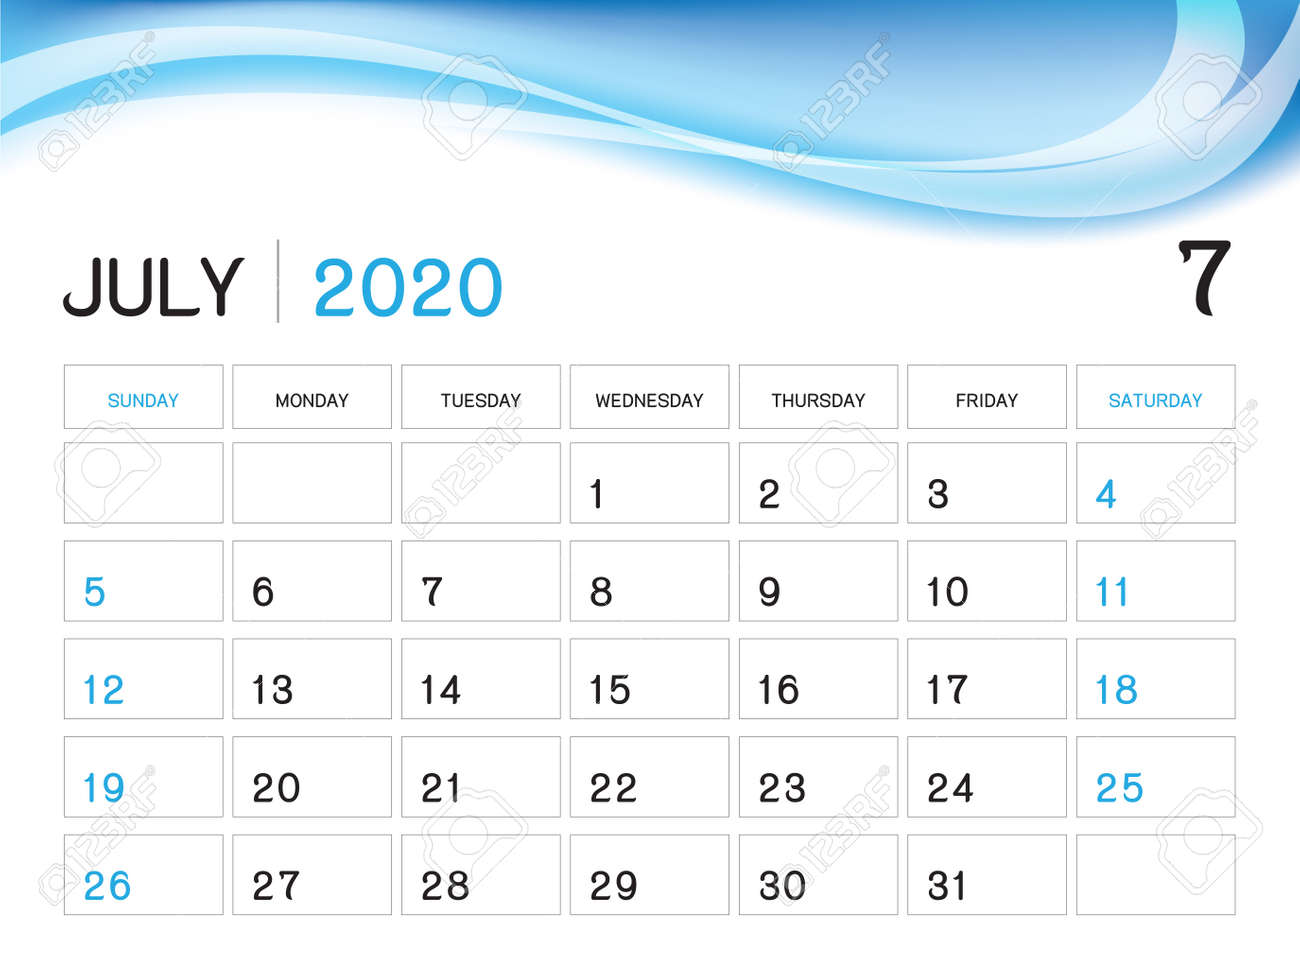 Printable Calendar July 2020.July 2020 Year Template Calendar 2020 Vector Desk Calendar